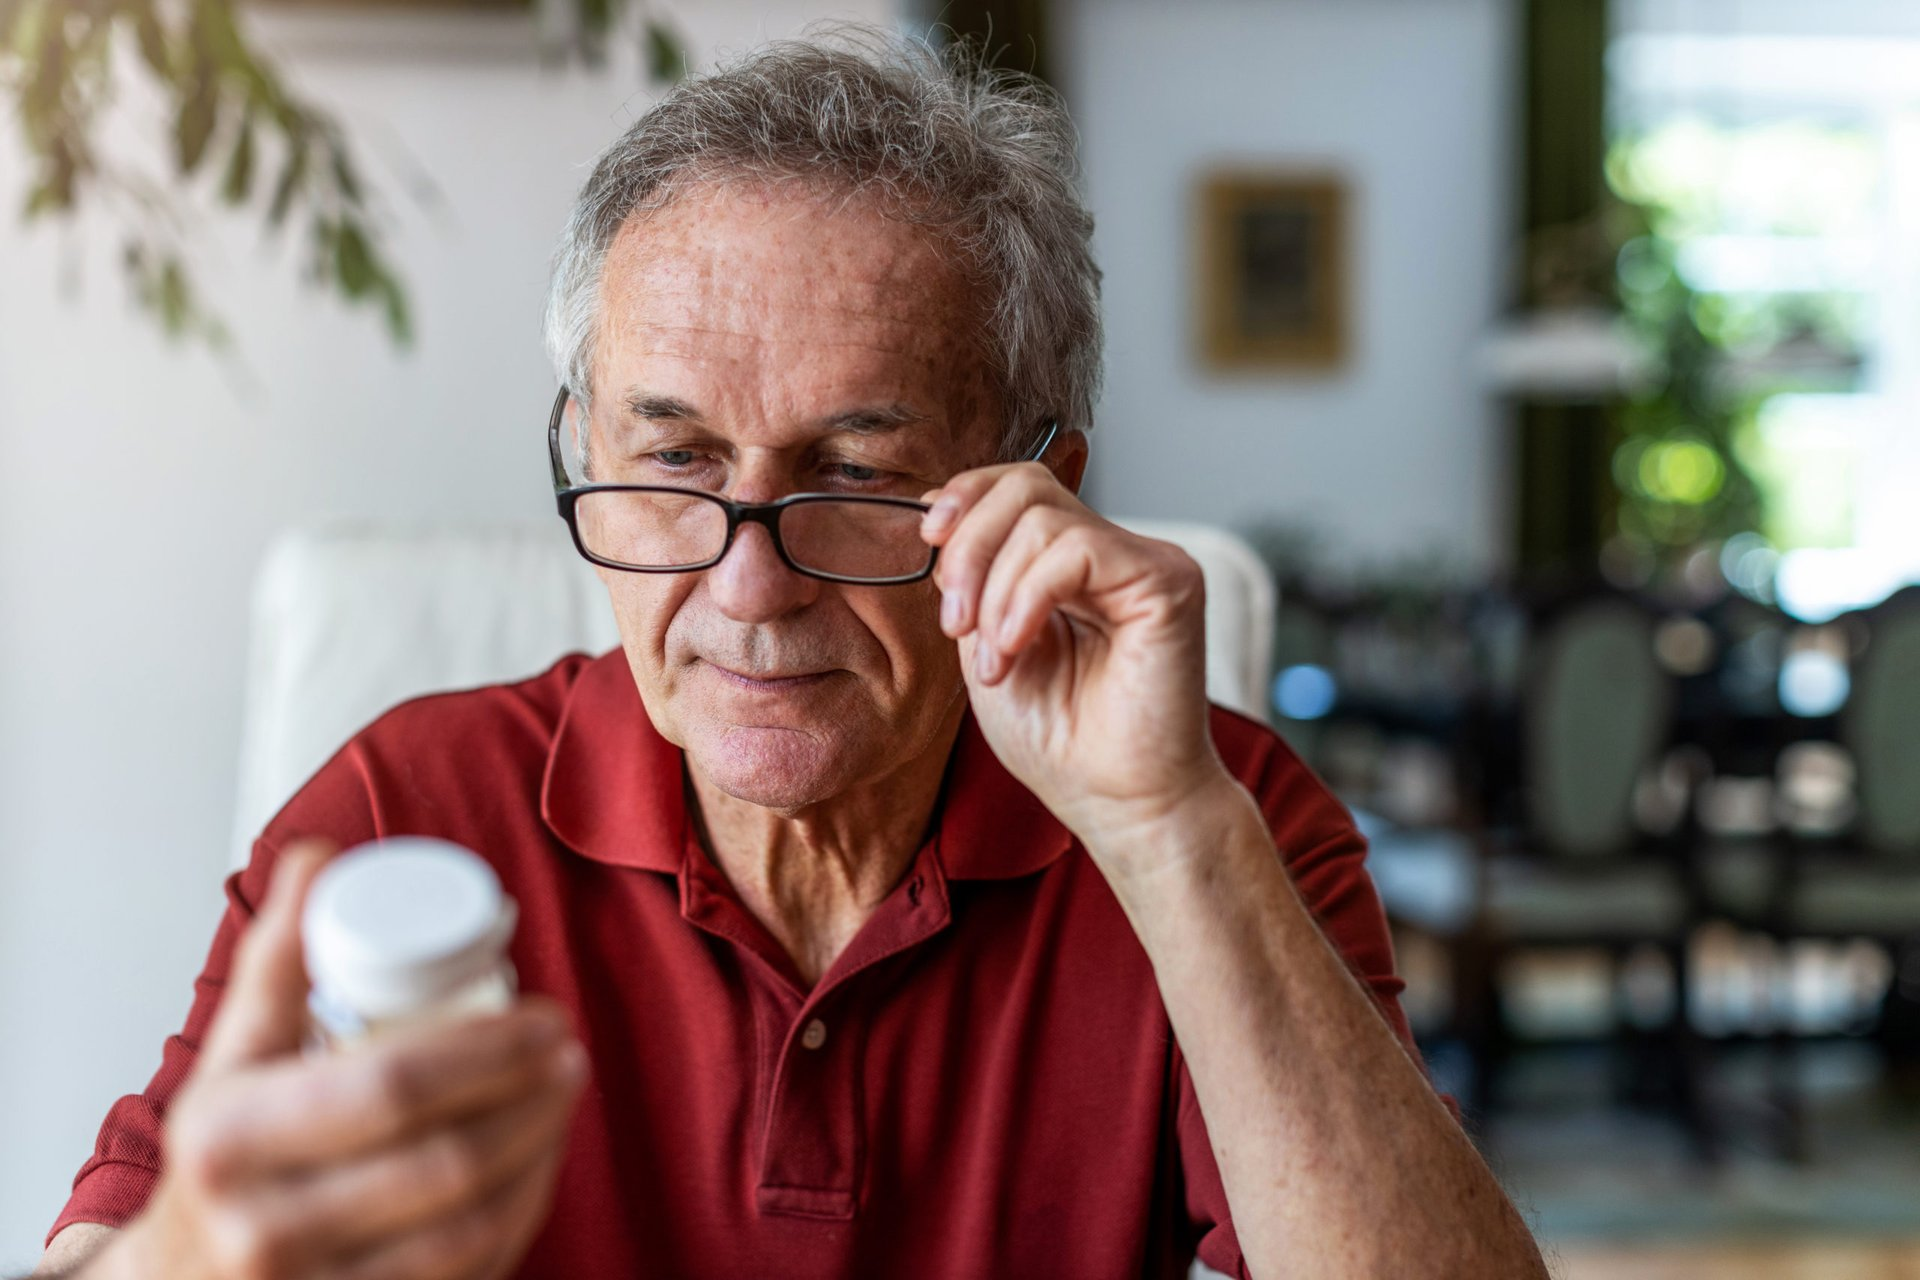 Man reading a prescription drug label